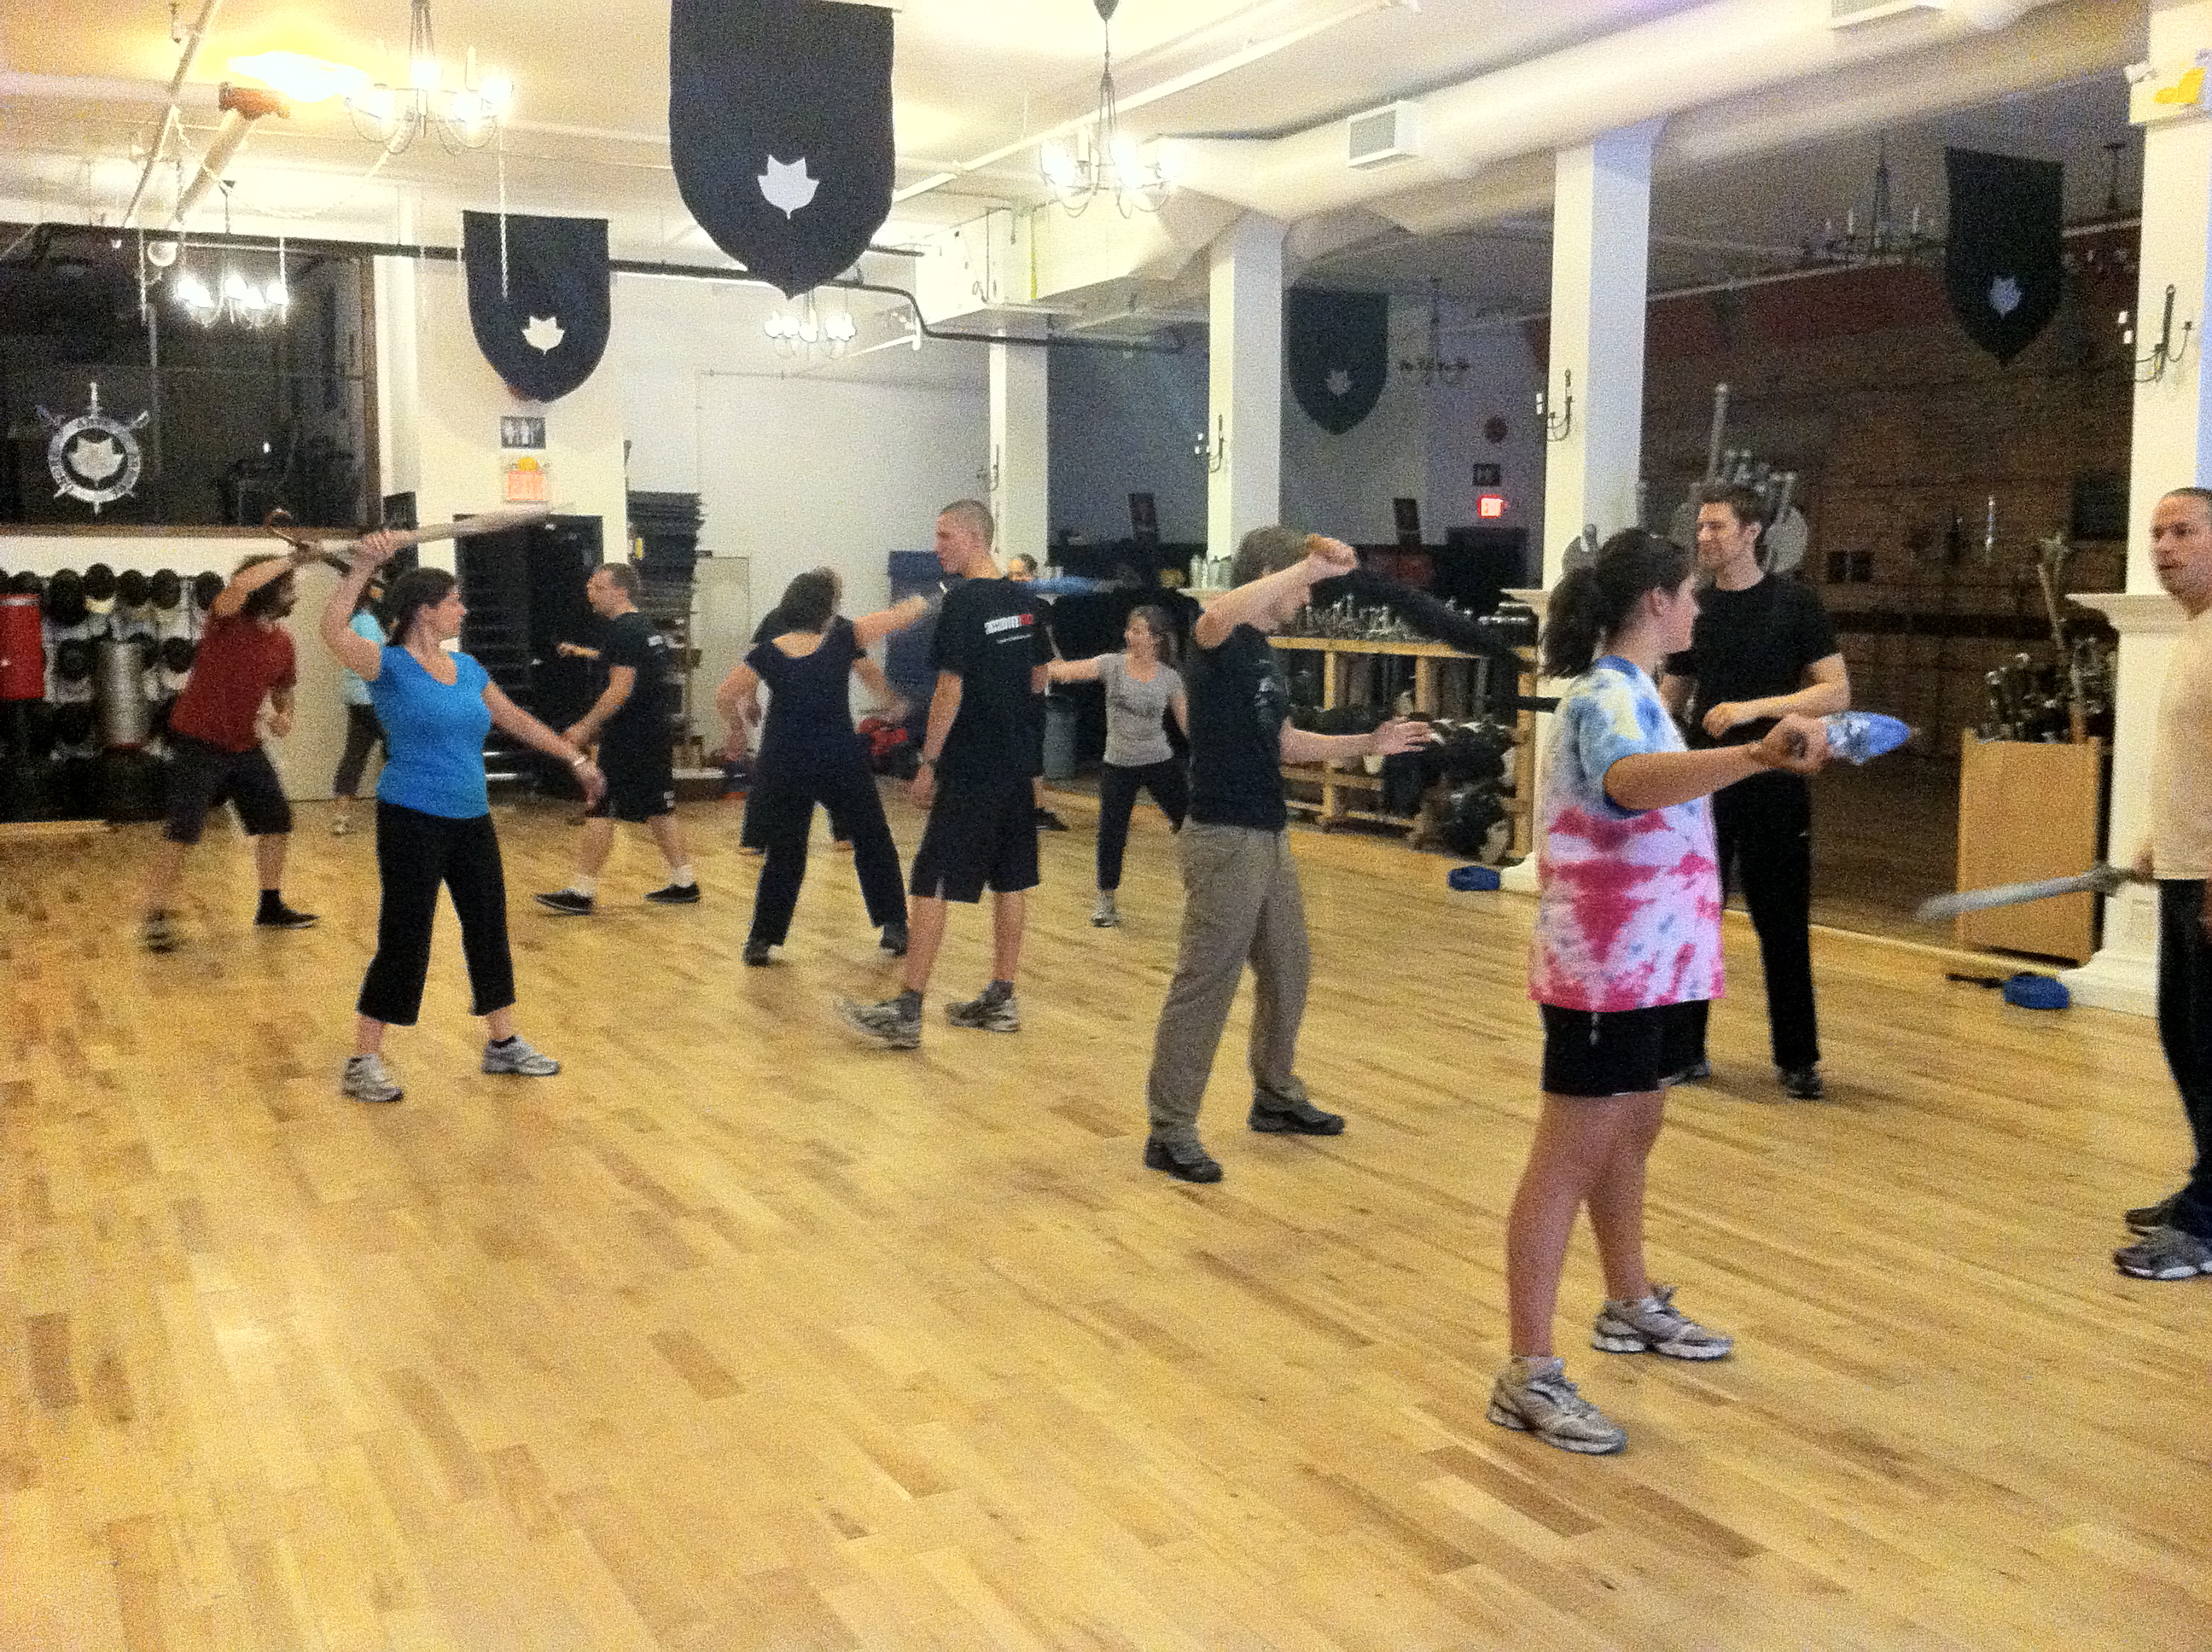 Swordfighting at Academie Duello Builds Muscles and Minds ...